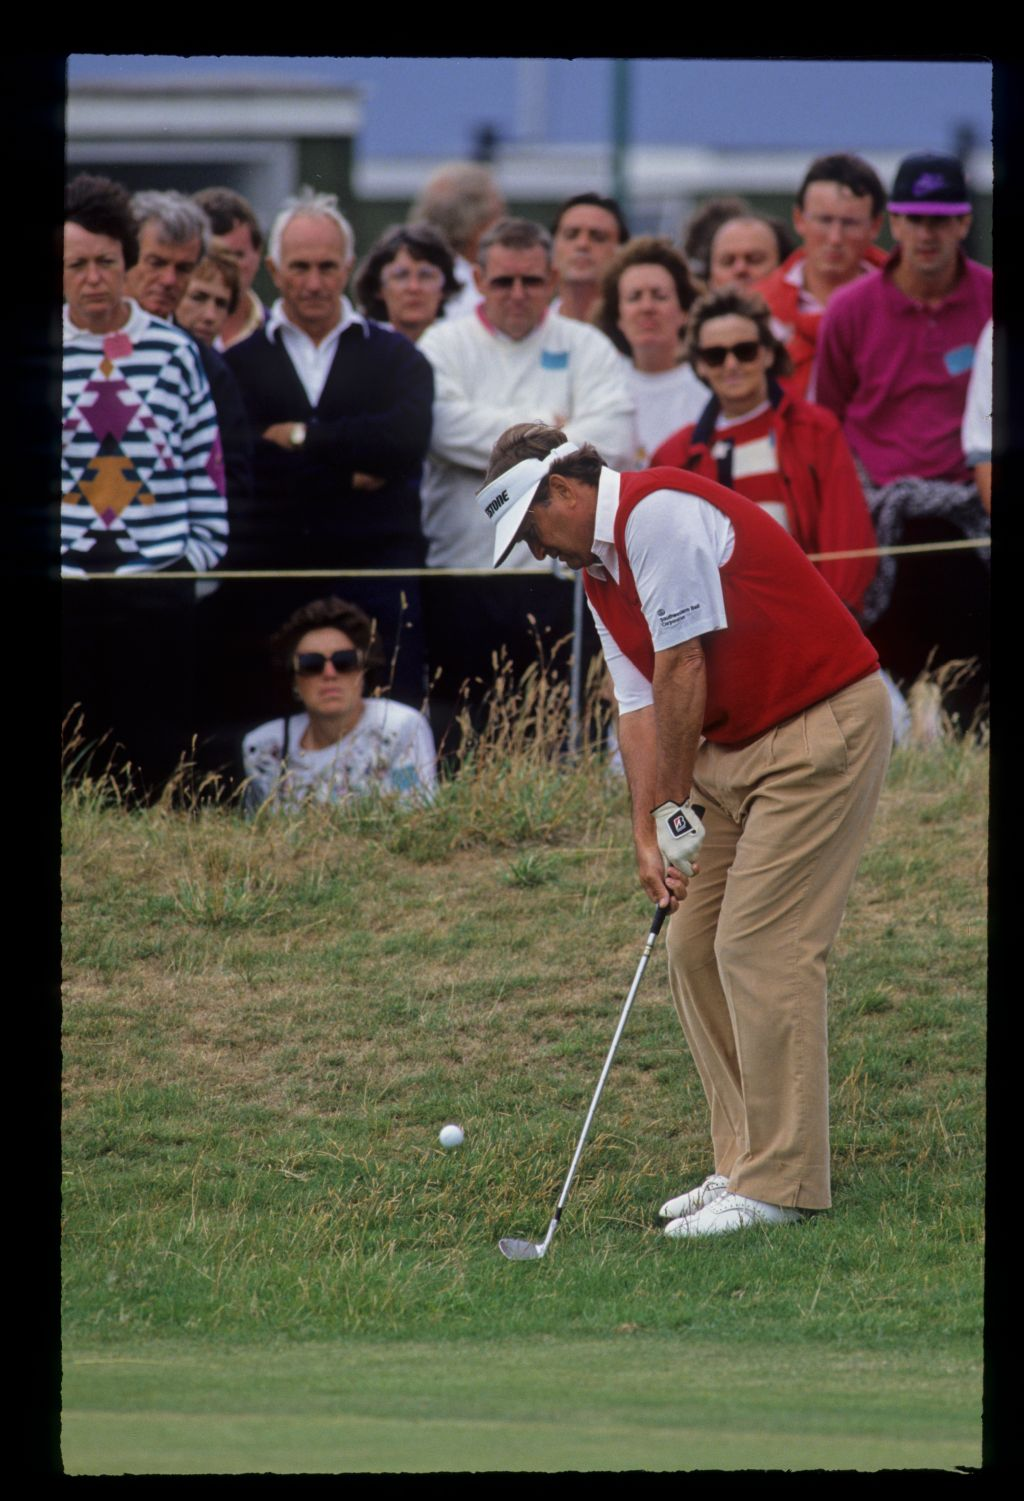 Raymond Floyd chipping from the greenside rough during the 1992 Open Championship